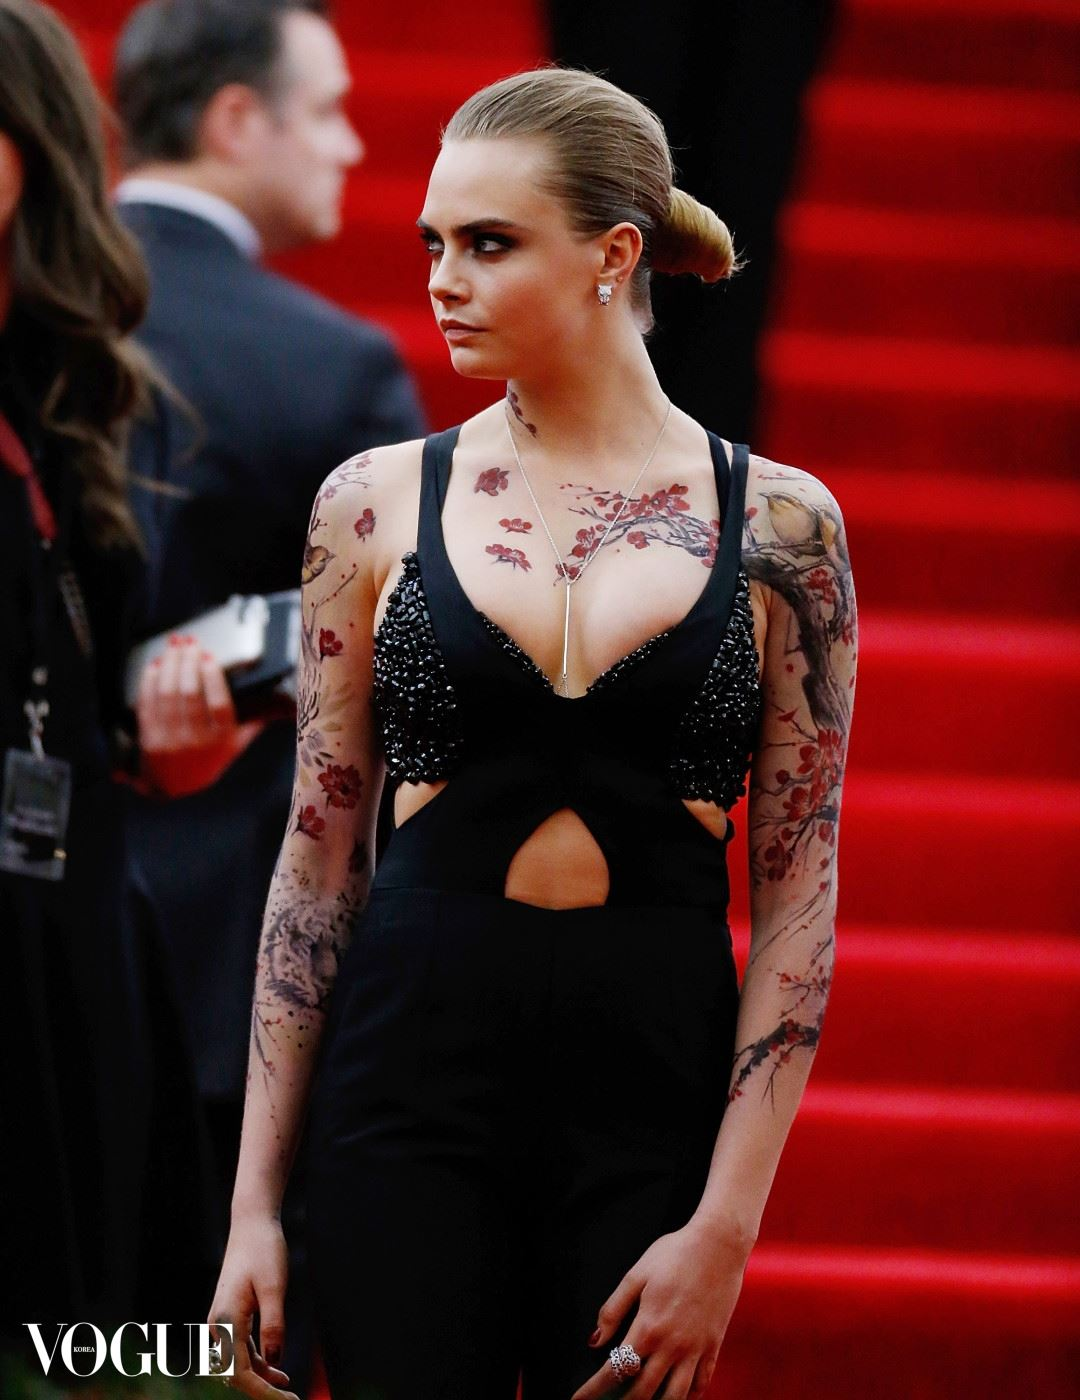 """NEW YORK, NY - MAY 04:  Cara Delevigne  attends """"China: Through The Looking Glass"""" Costume Institute Benefit Gala  at Metropolitan Museum of Art on May 4, 2015 in New York City.  (Photo by John Lamparski/Getty Images)"""